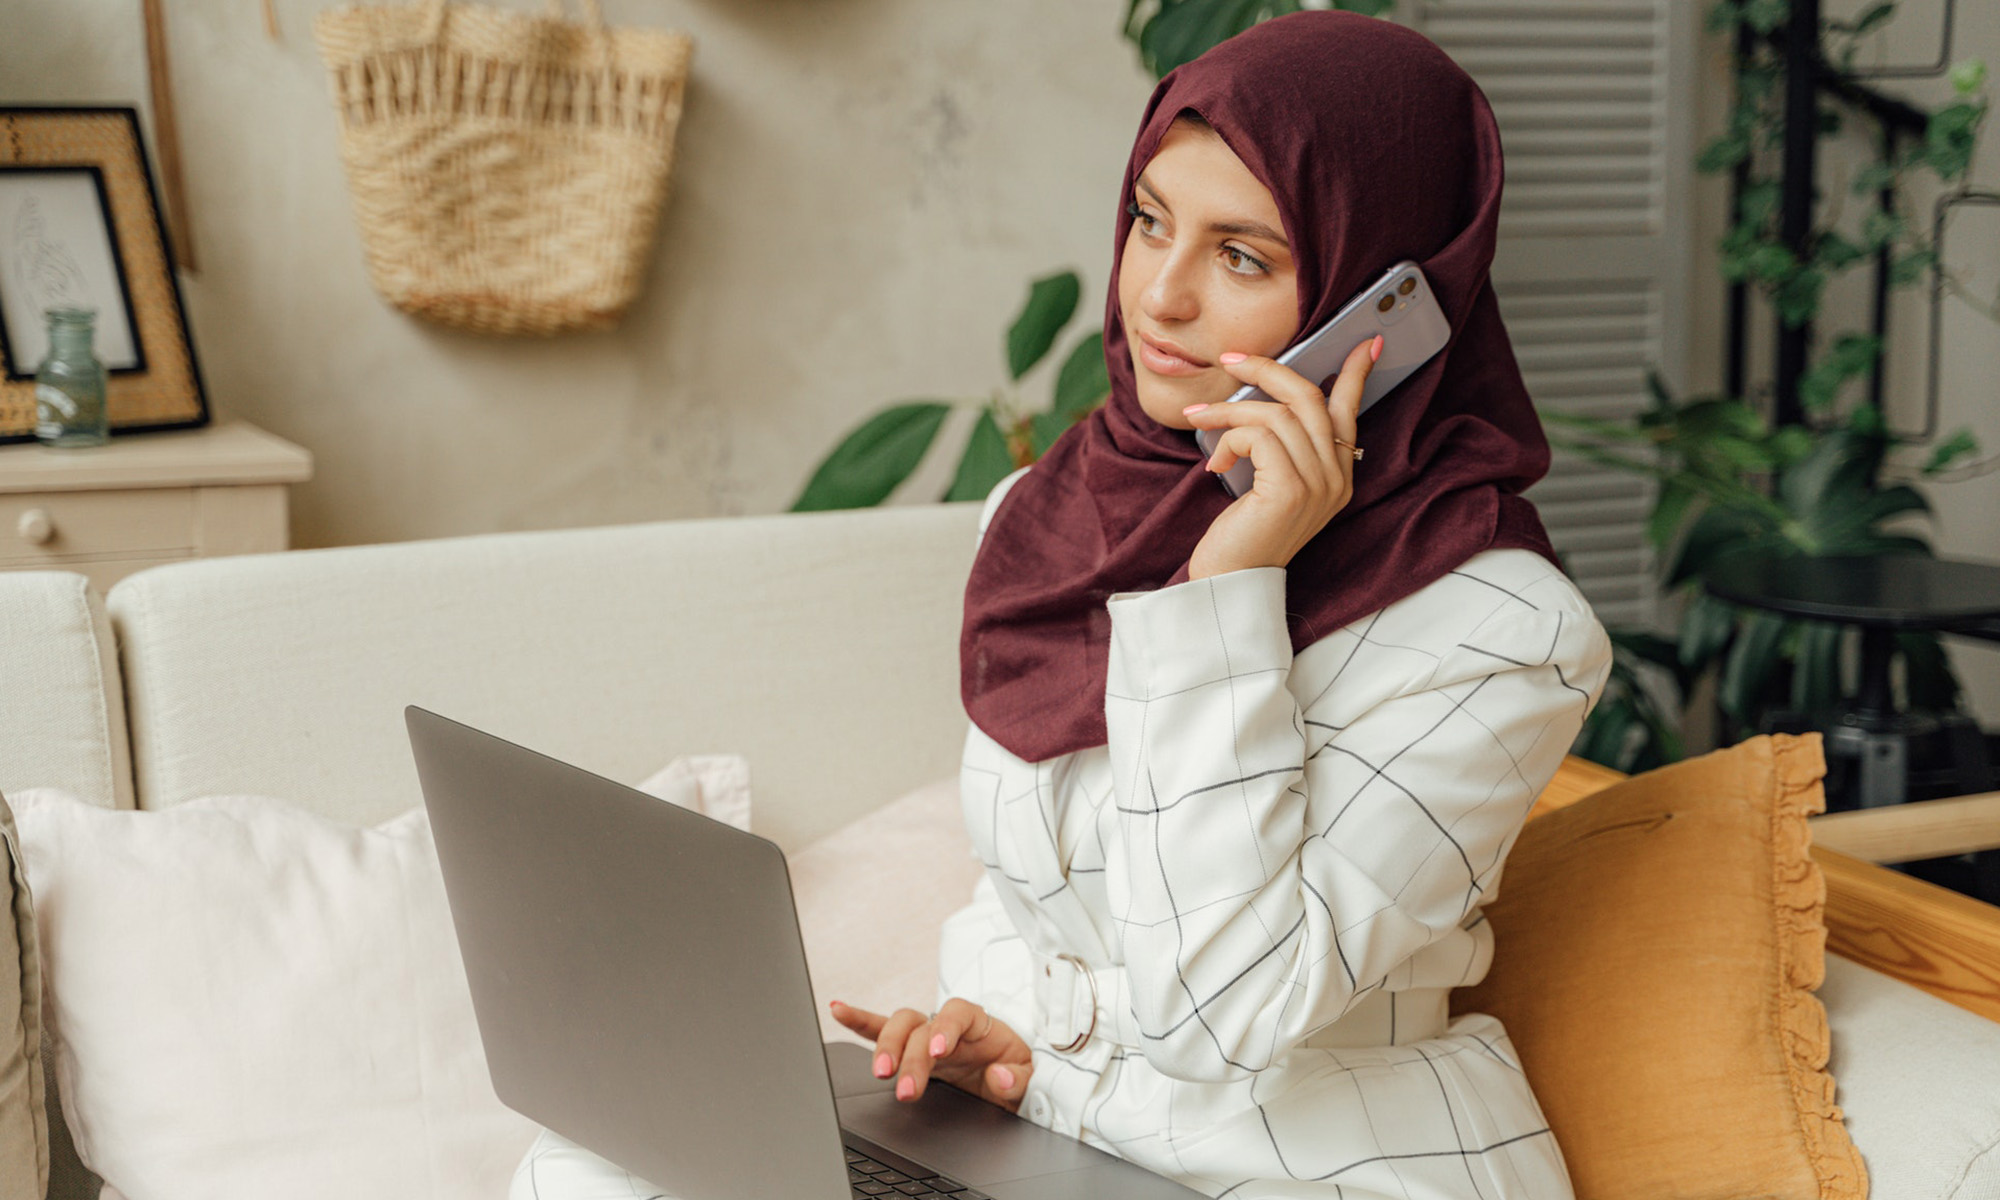 facebook has surveyed people about their ramadan shopping and media habits